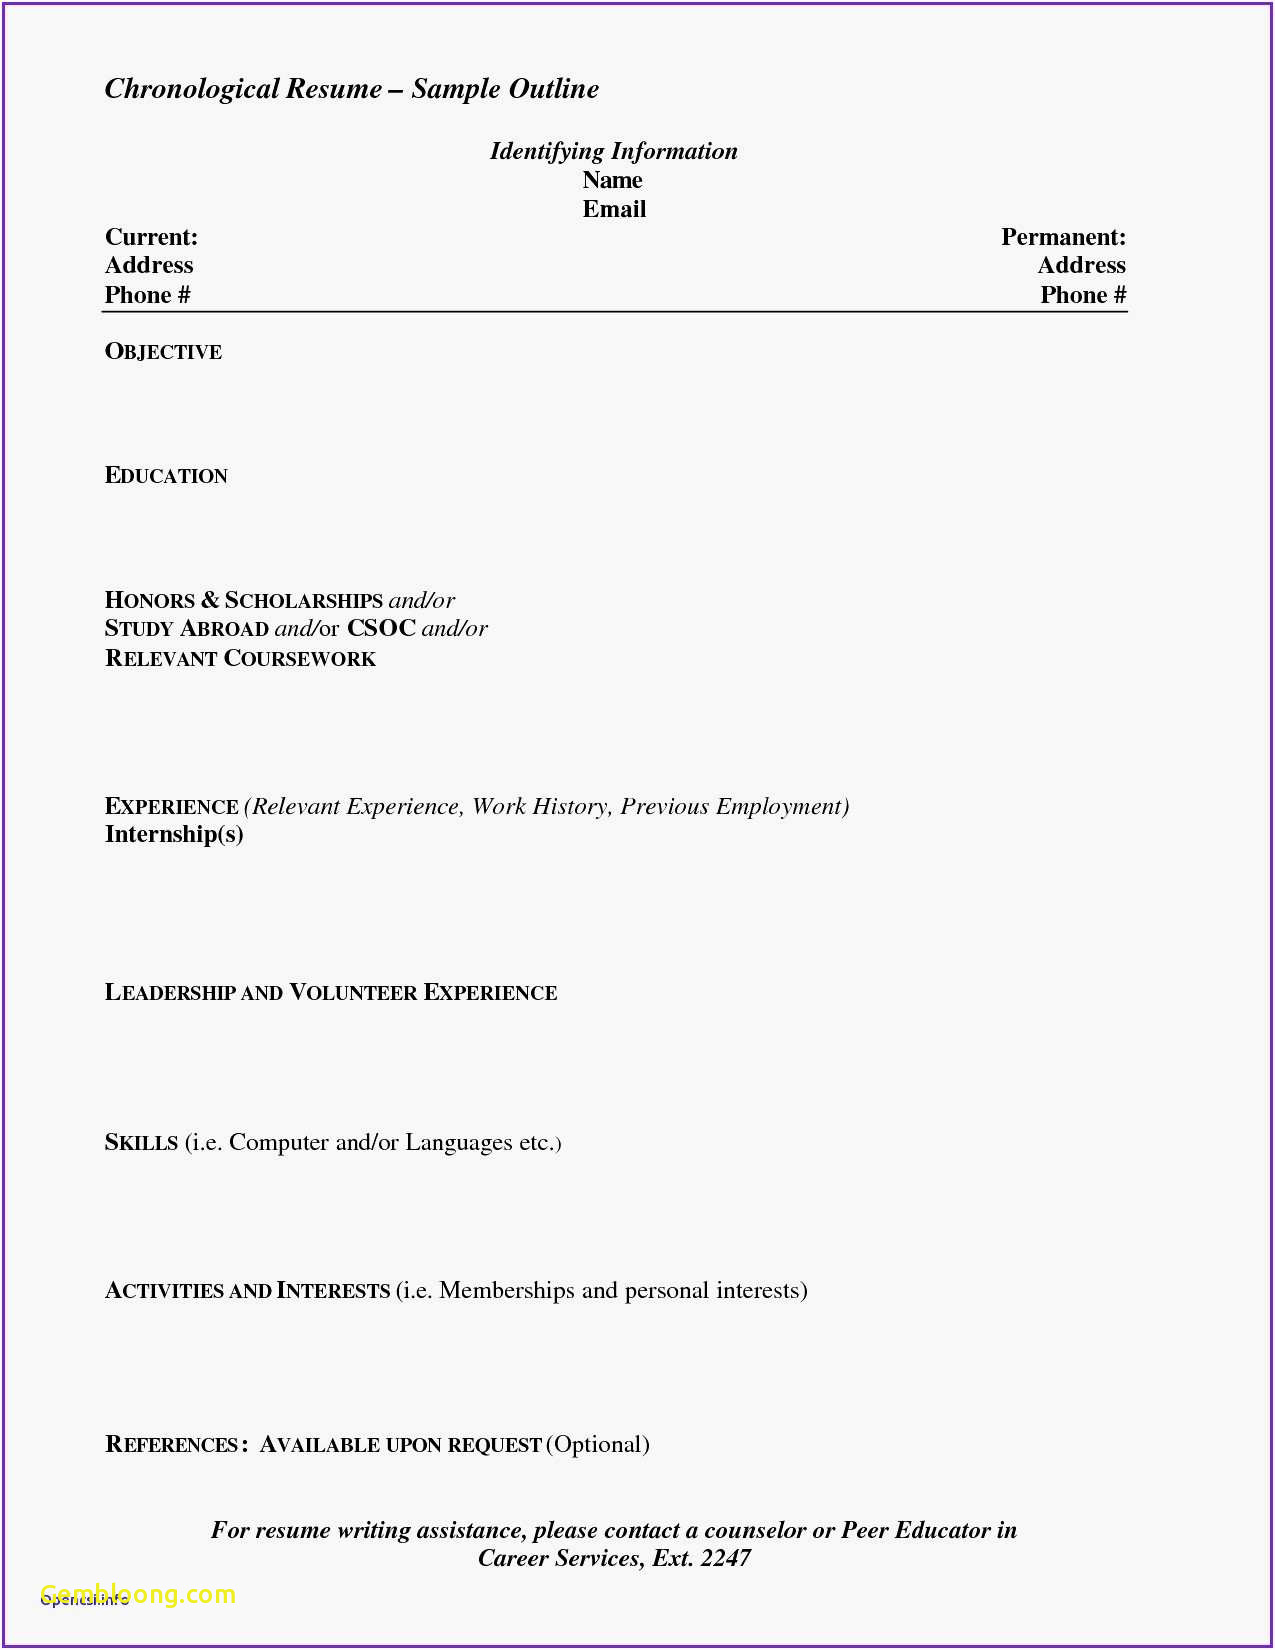 Post Resume Online - Download New Resume Writing Panies